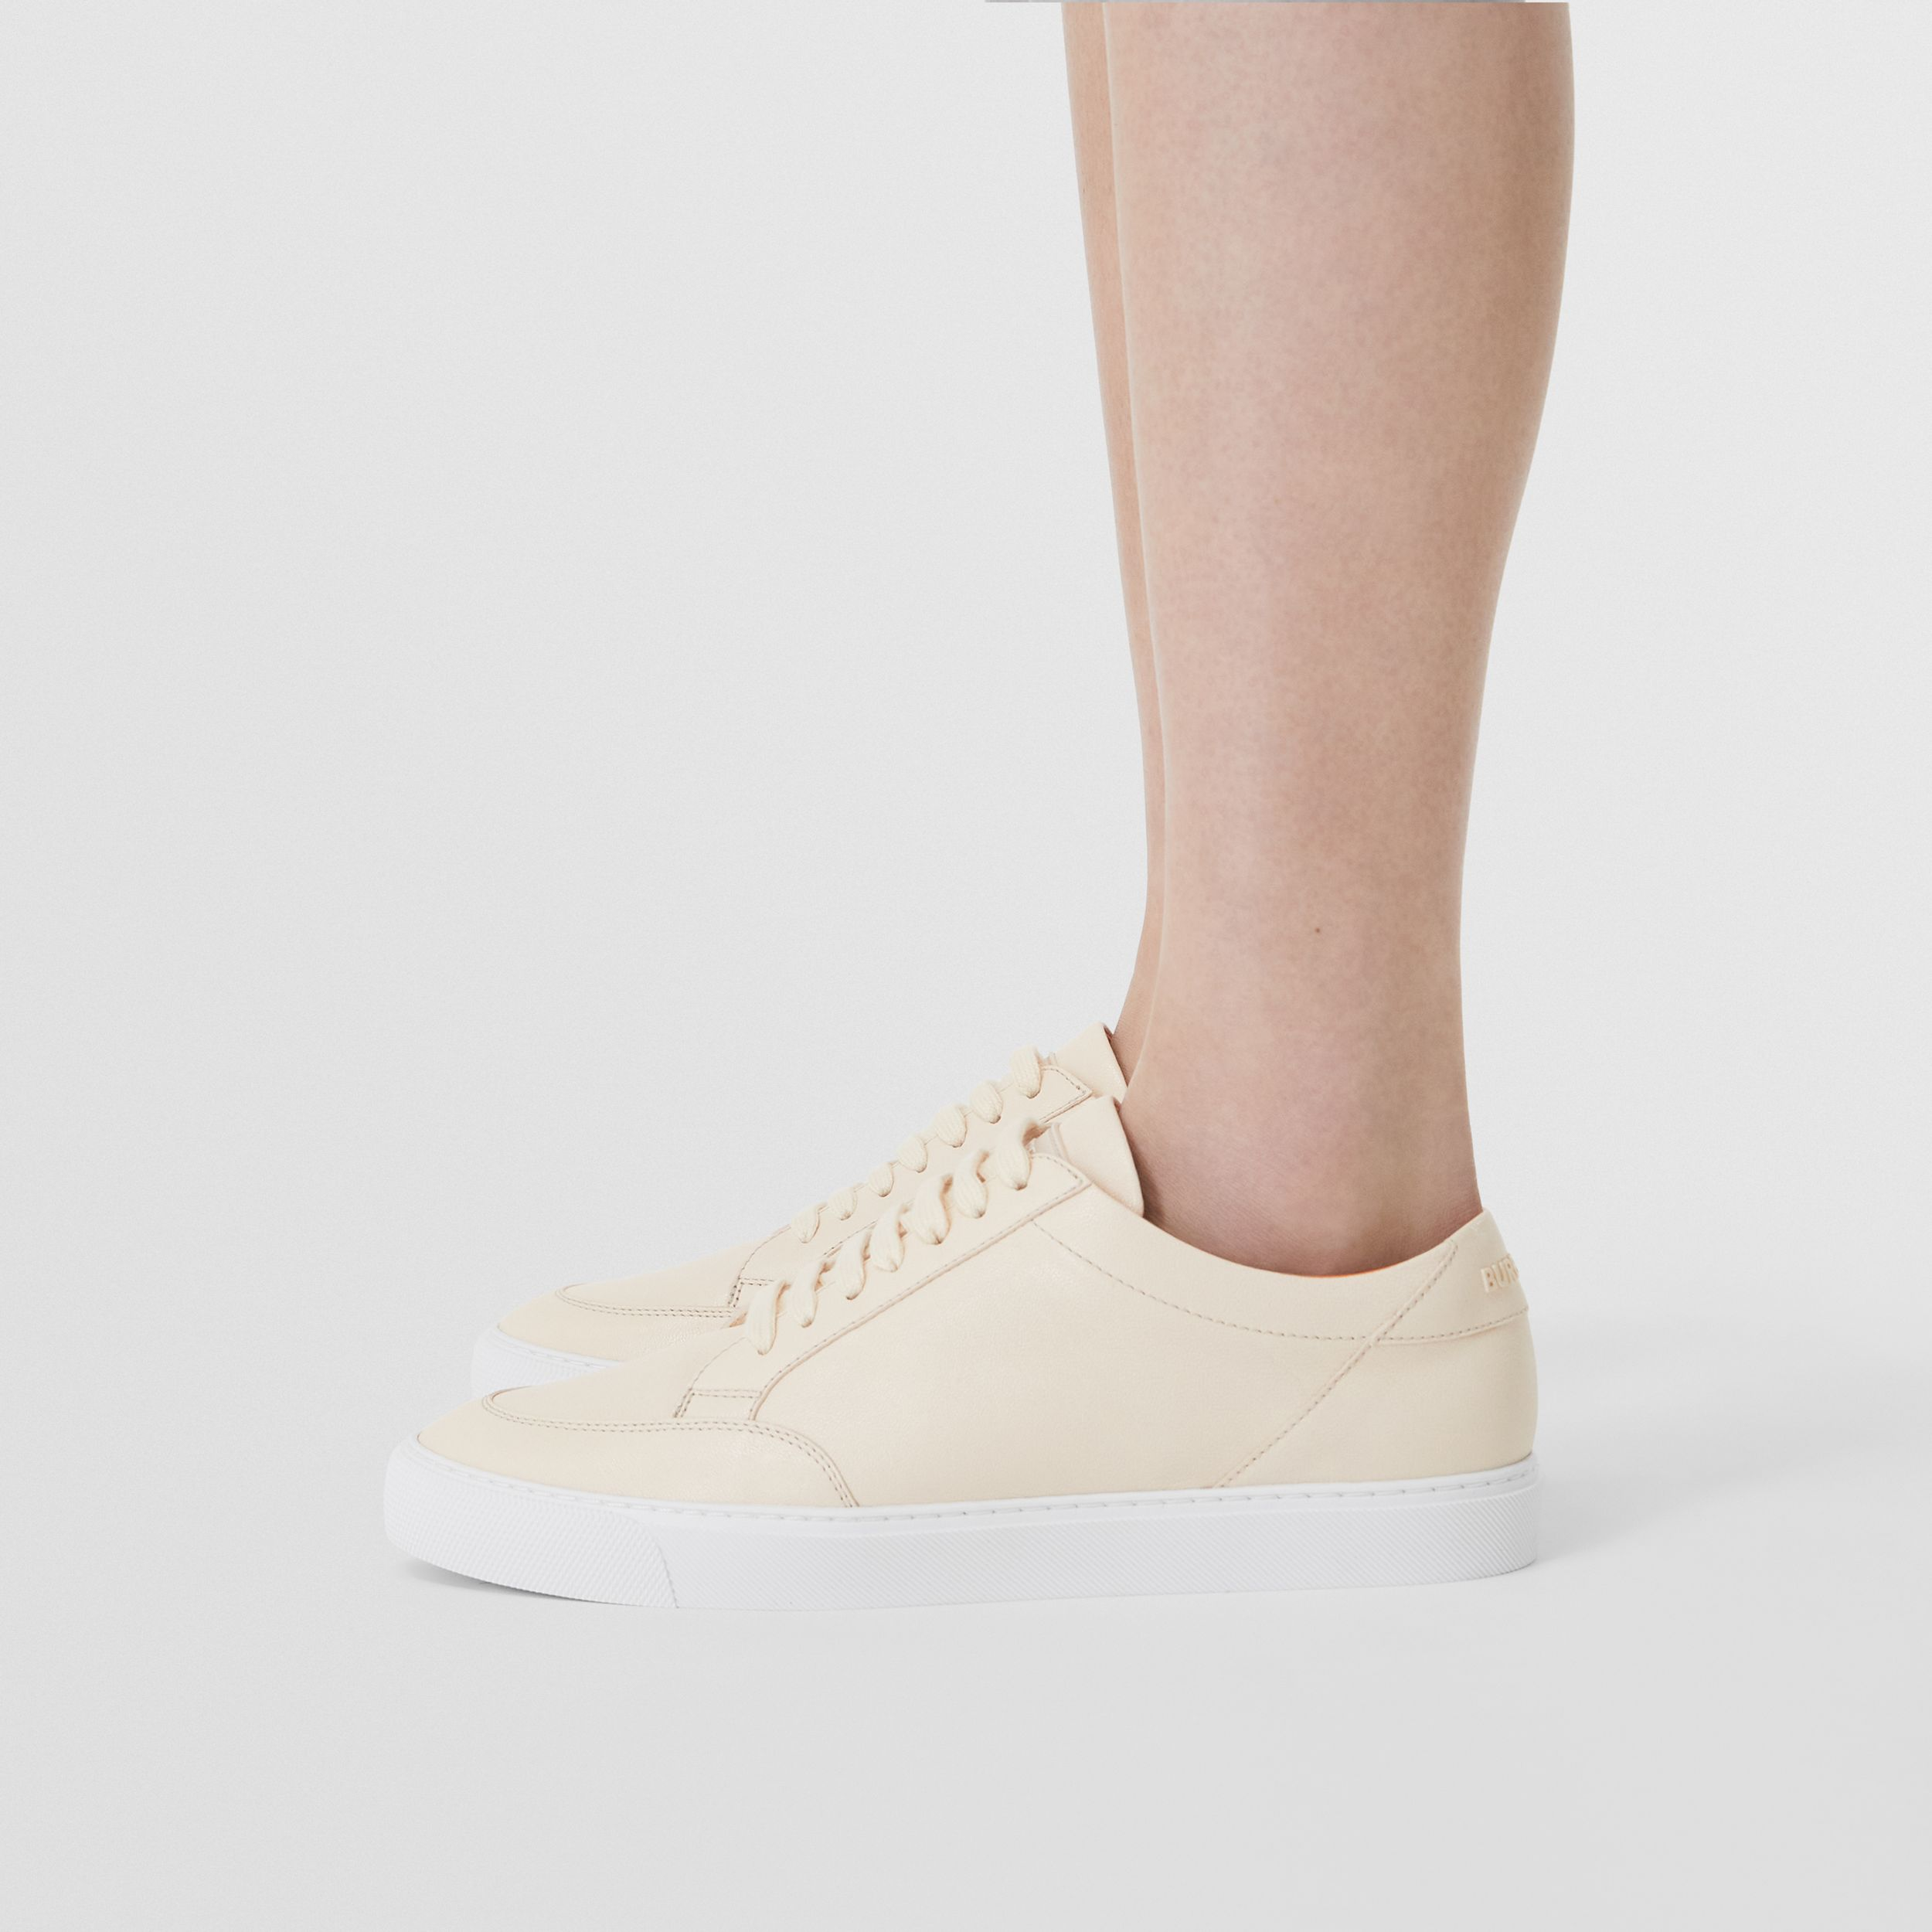 Logo Detail Lambskin Sneakers in Pale Biscuit - Women | Burberry Singapore - 3